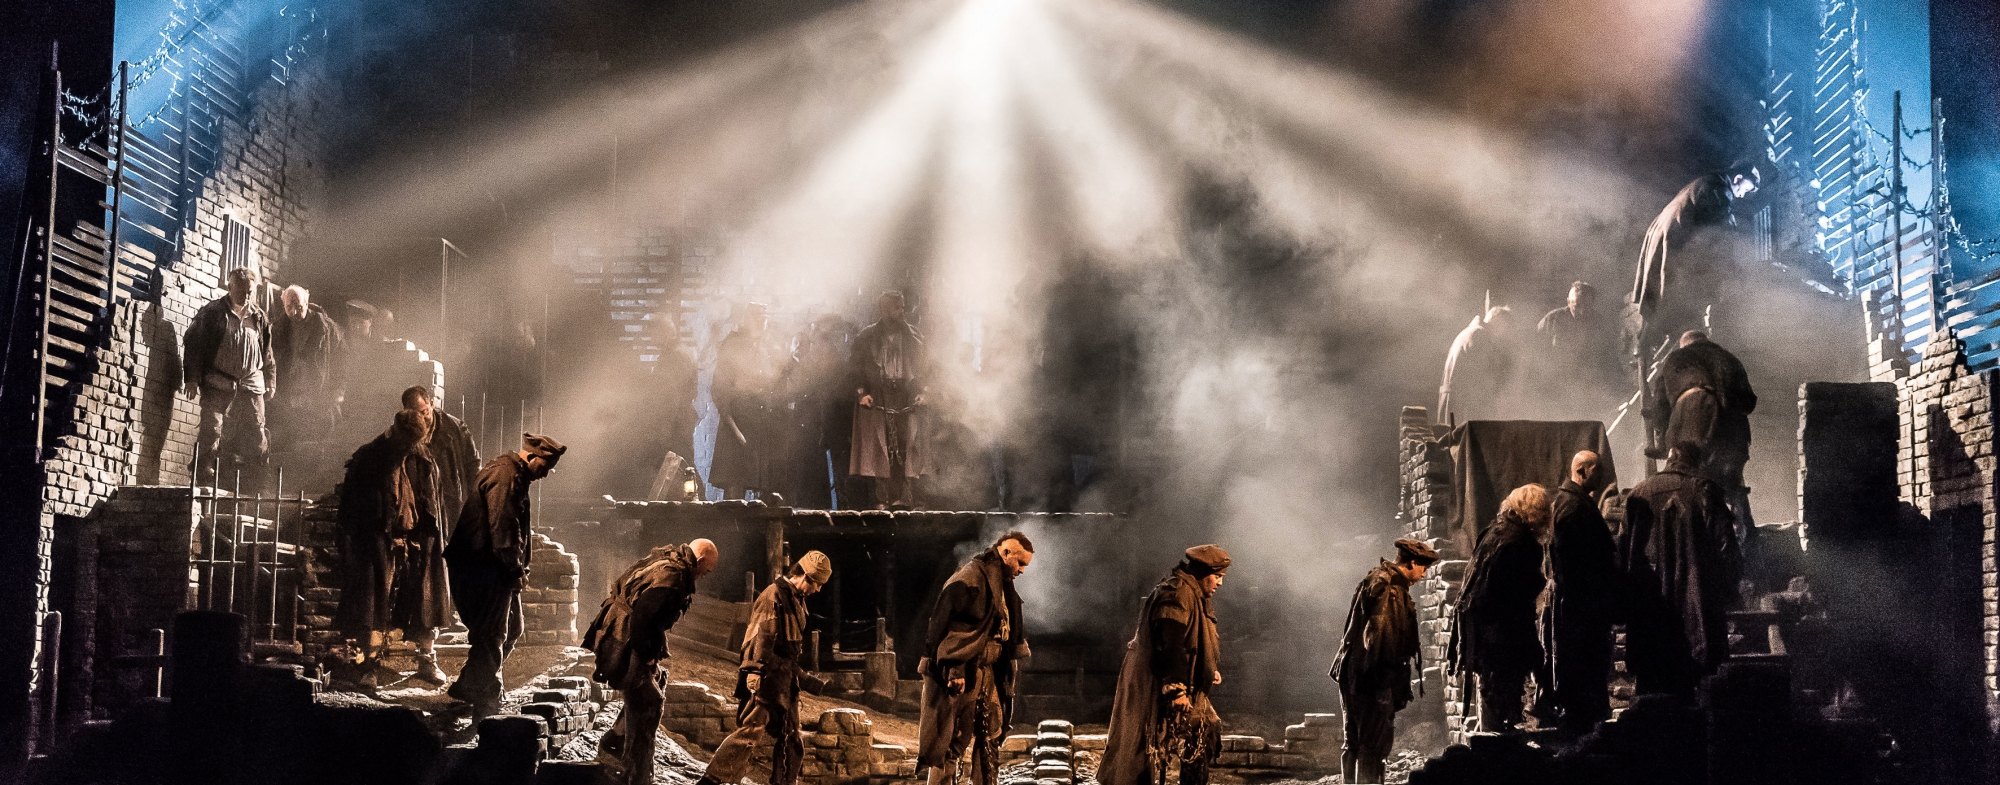 A dozen men wearing dark clothes walk somberly in line, across the dimly lit stage